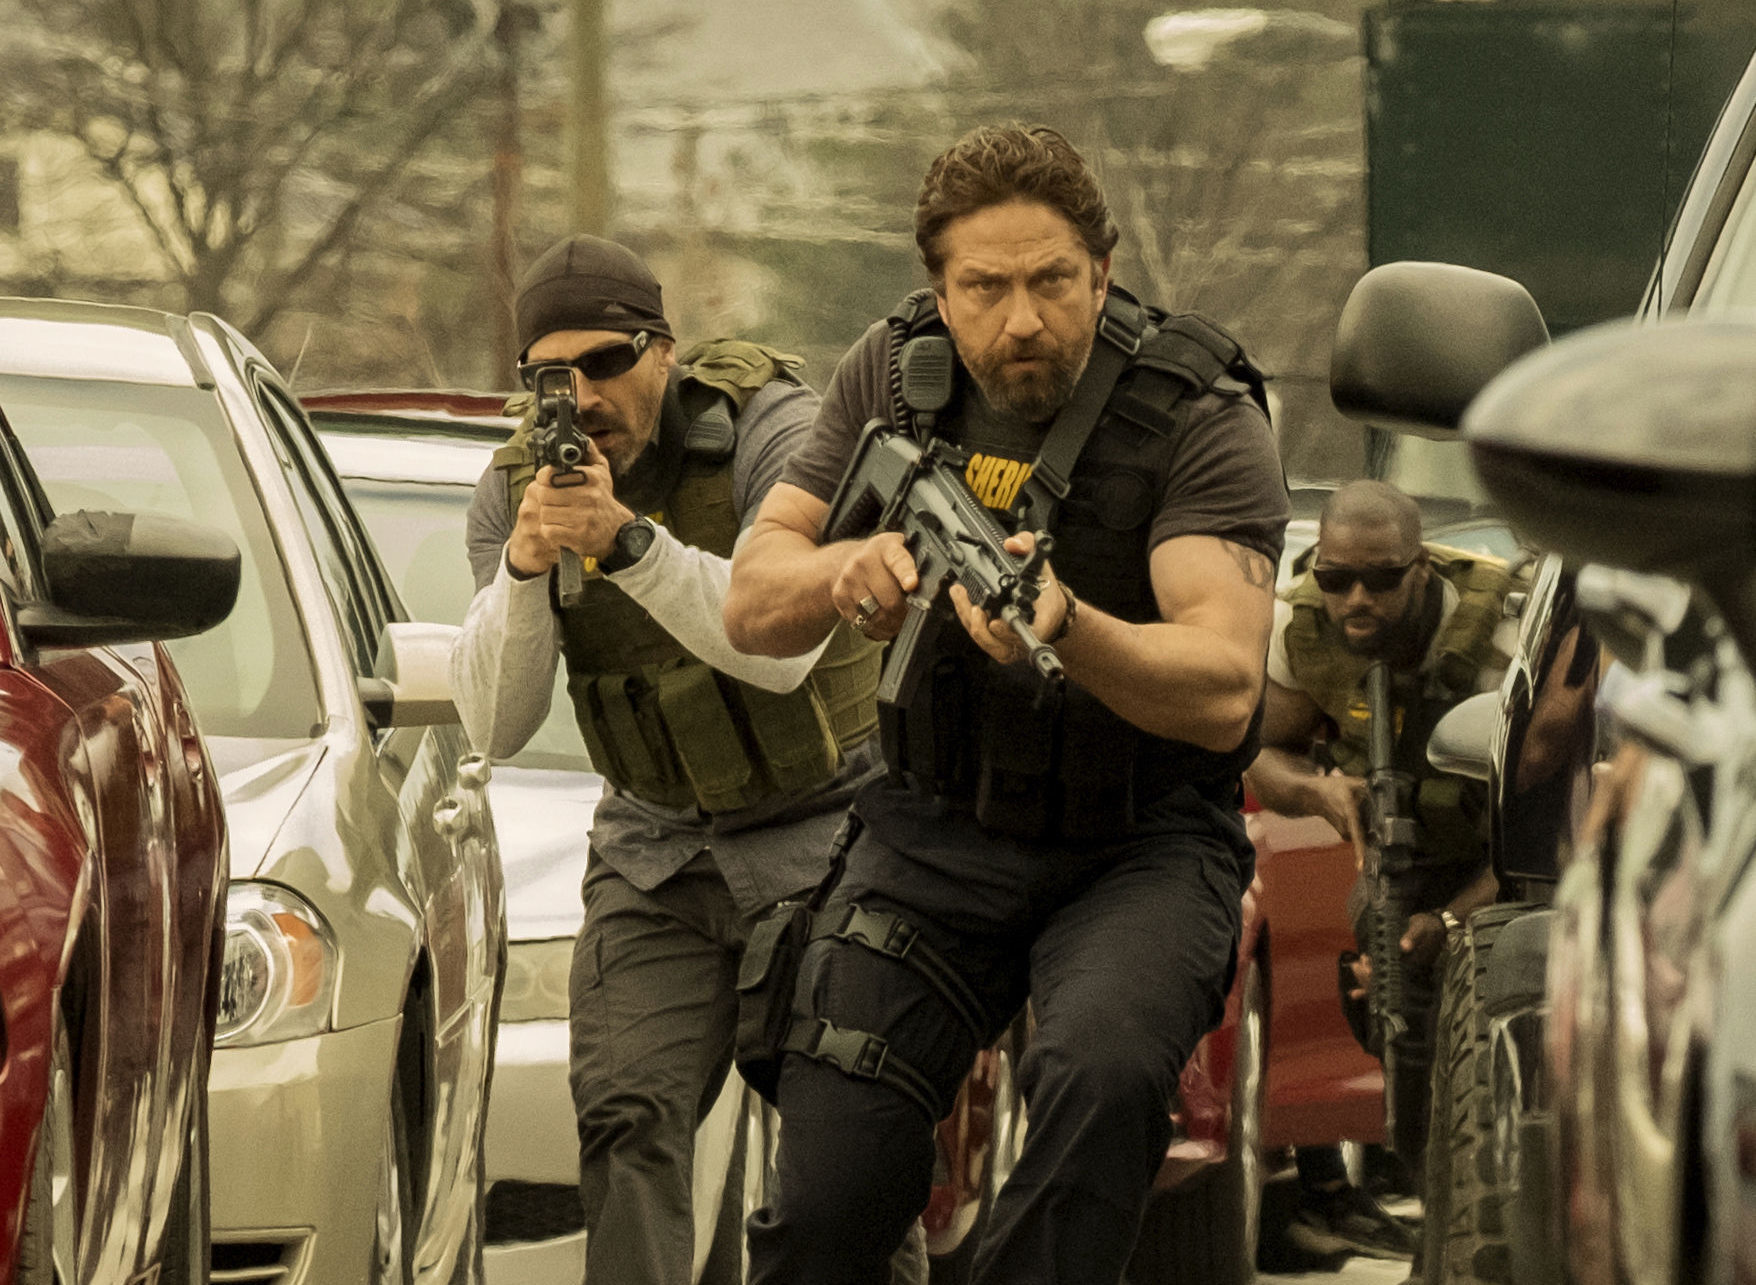 Jay Dobyns as Wolfgang and Gerard Butler as Detective Nick O'Brien.